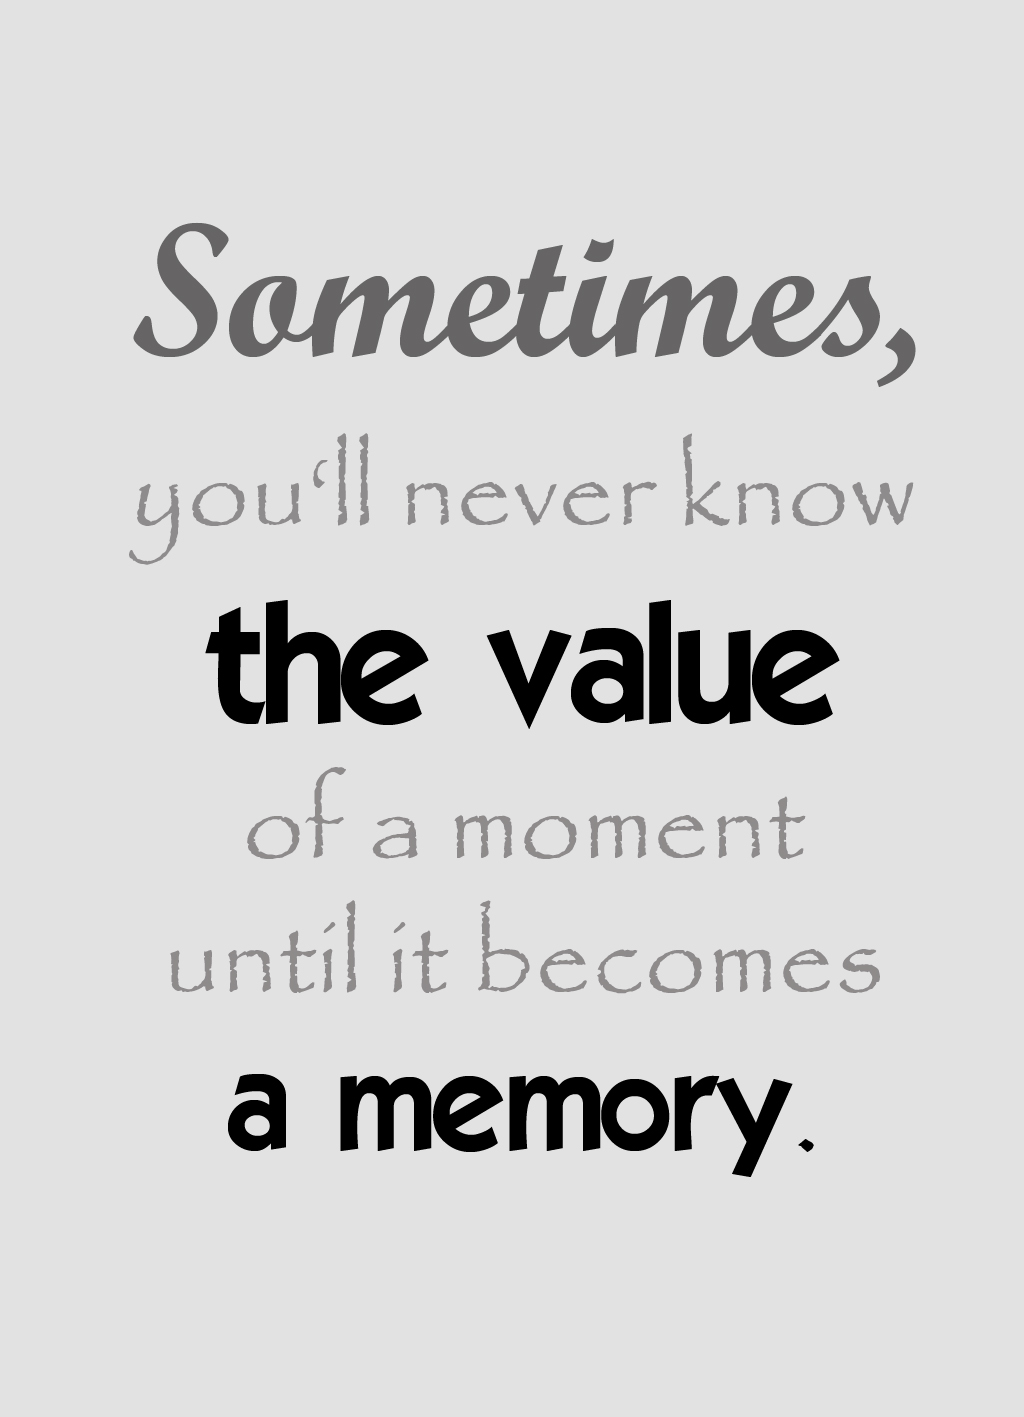 Sometimes you'll never know the value of a moment until it becomes a memory